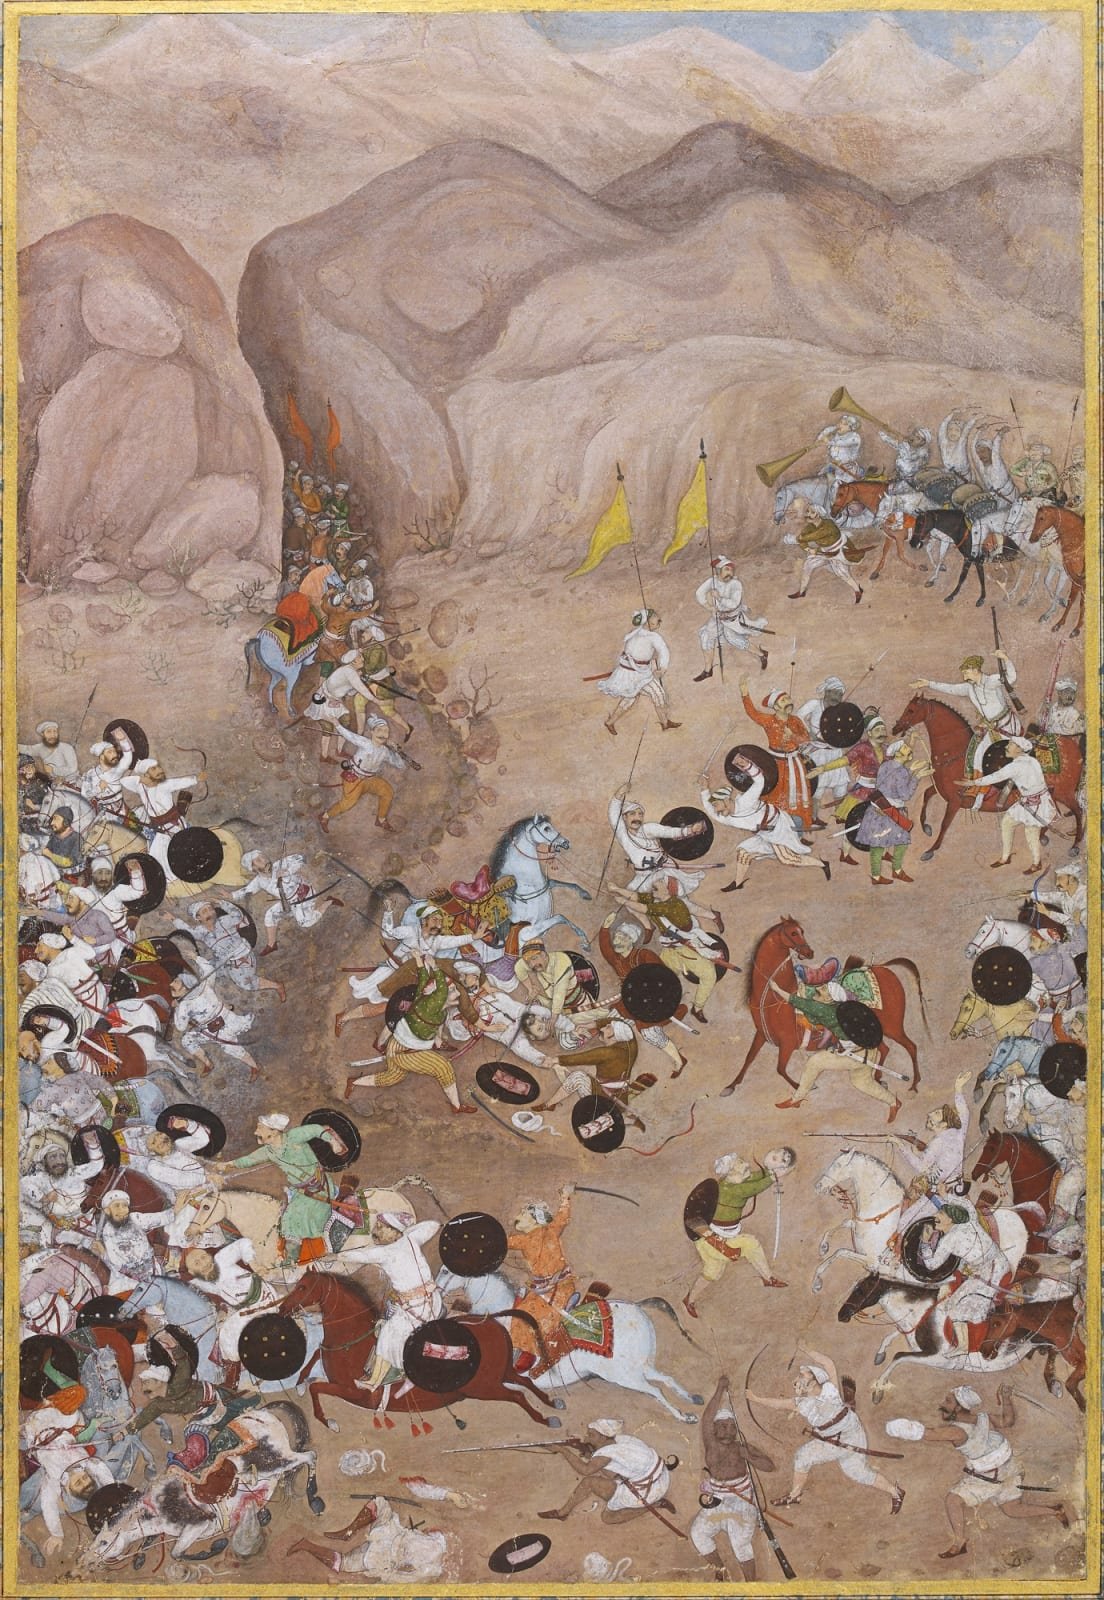 A Page related to the Windsor Castle Padshahnama: The Victory of Bikramajit and his Bundelas over the Rebel Darya Khan and his Afghans, 1631, Imperial Mughal, attributed to Balchand or a close associate, 1631–35